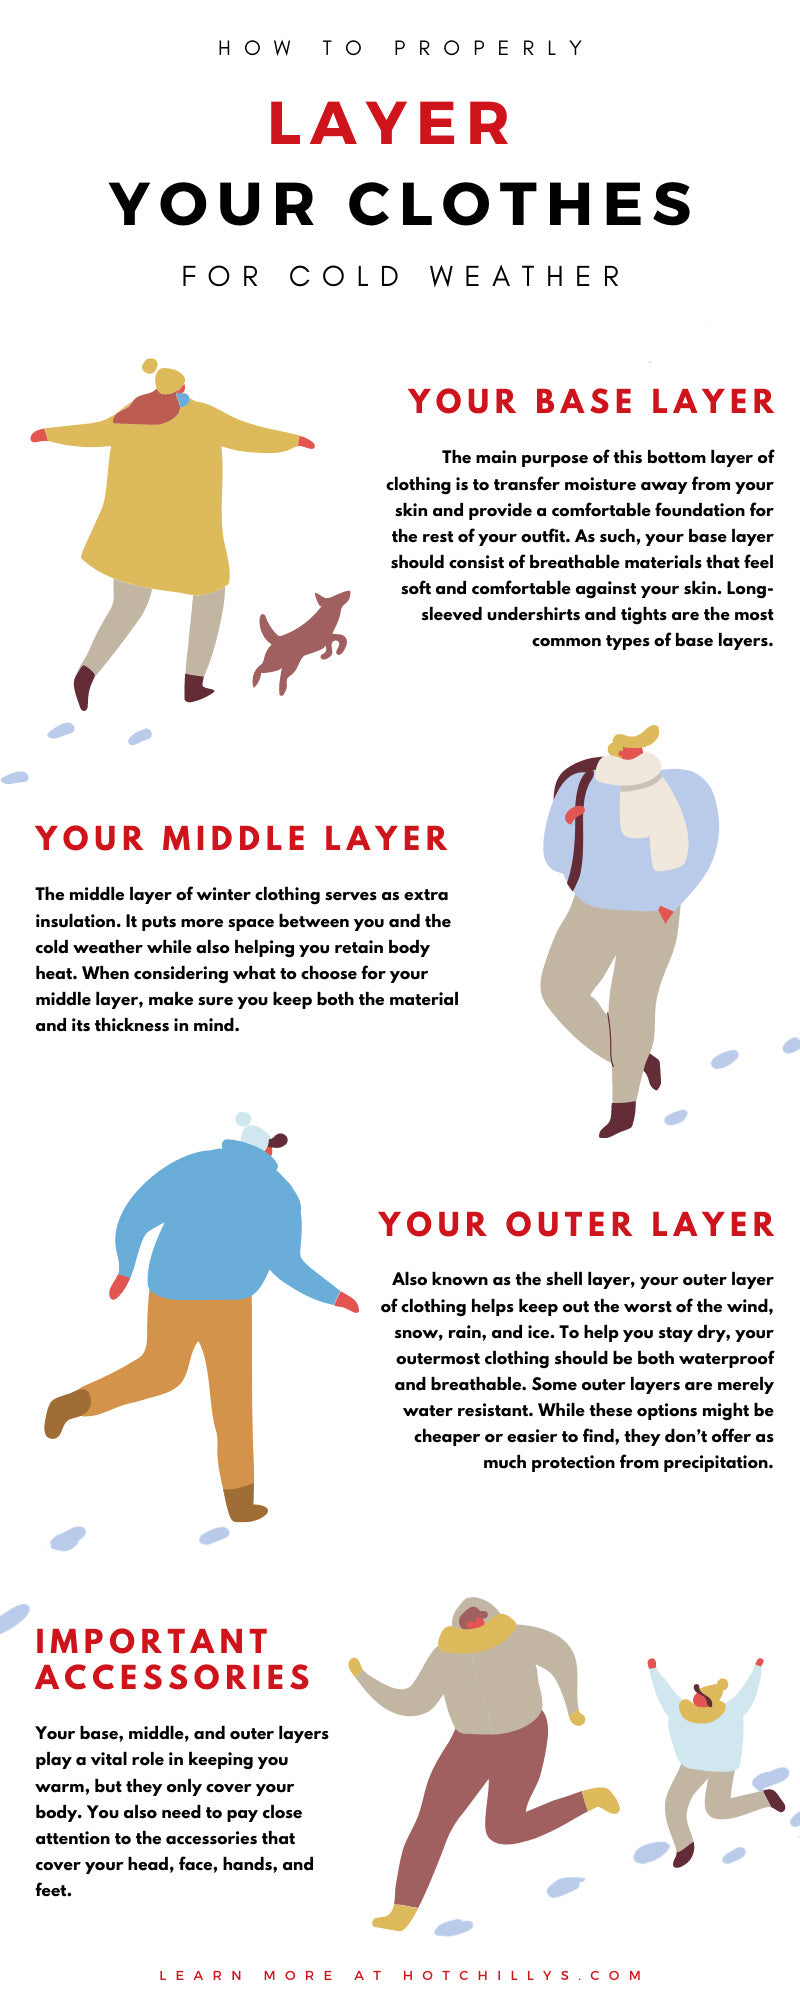 How To Properly Layer Your Clothes for Cold Weather